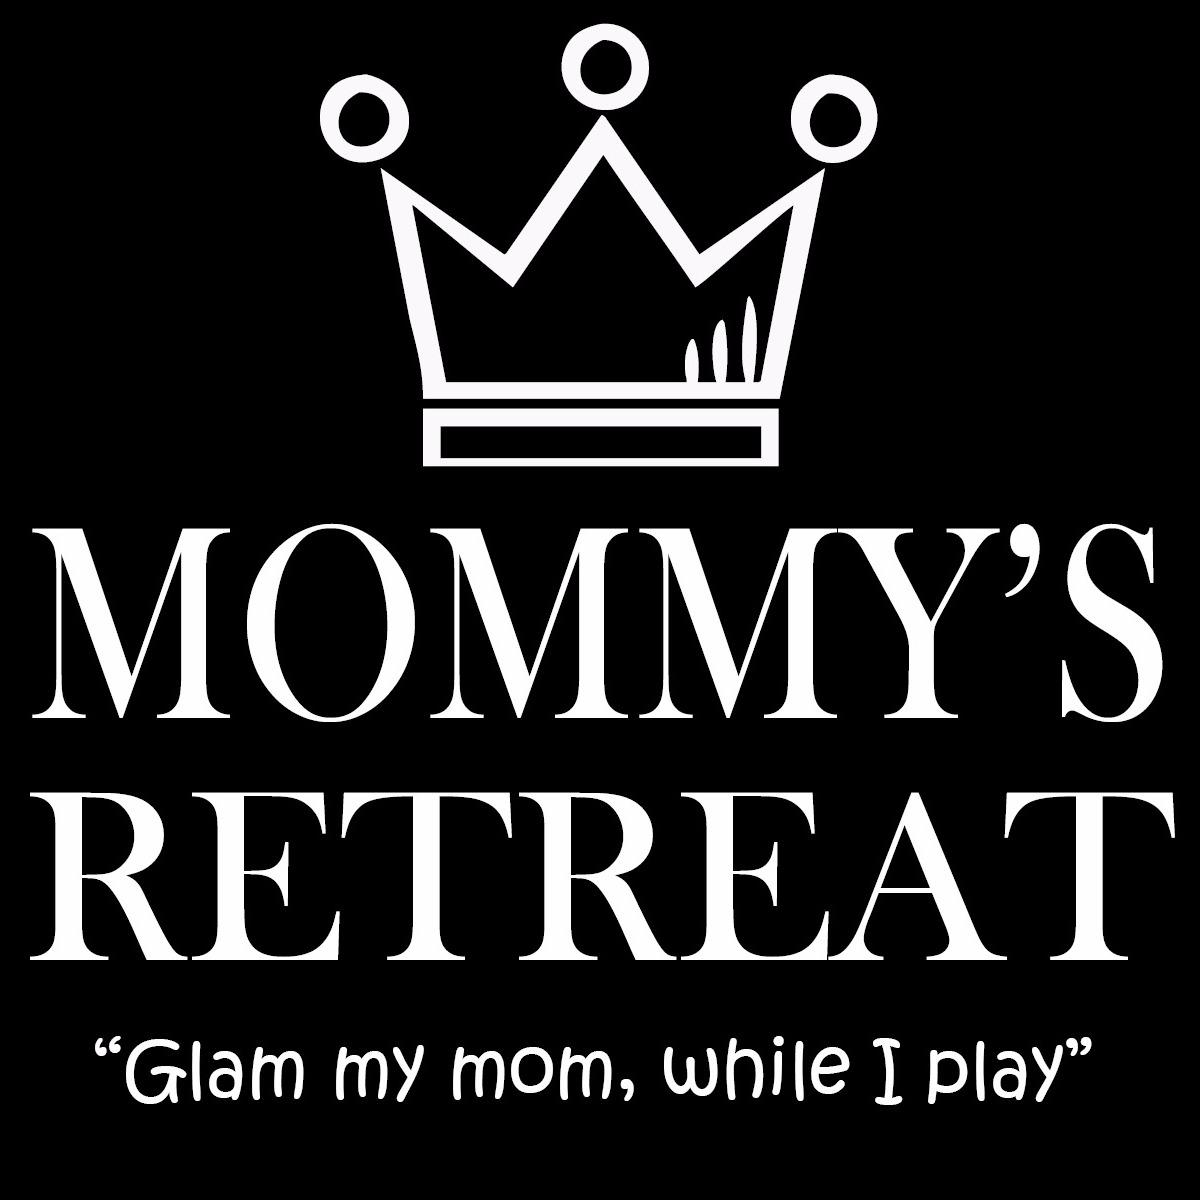 Mommy's Retreat